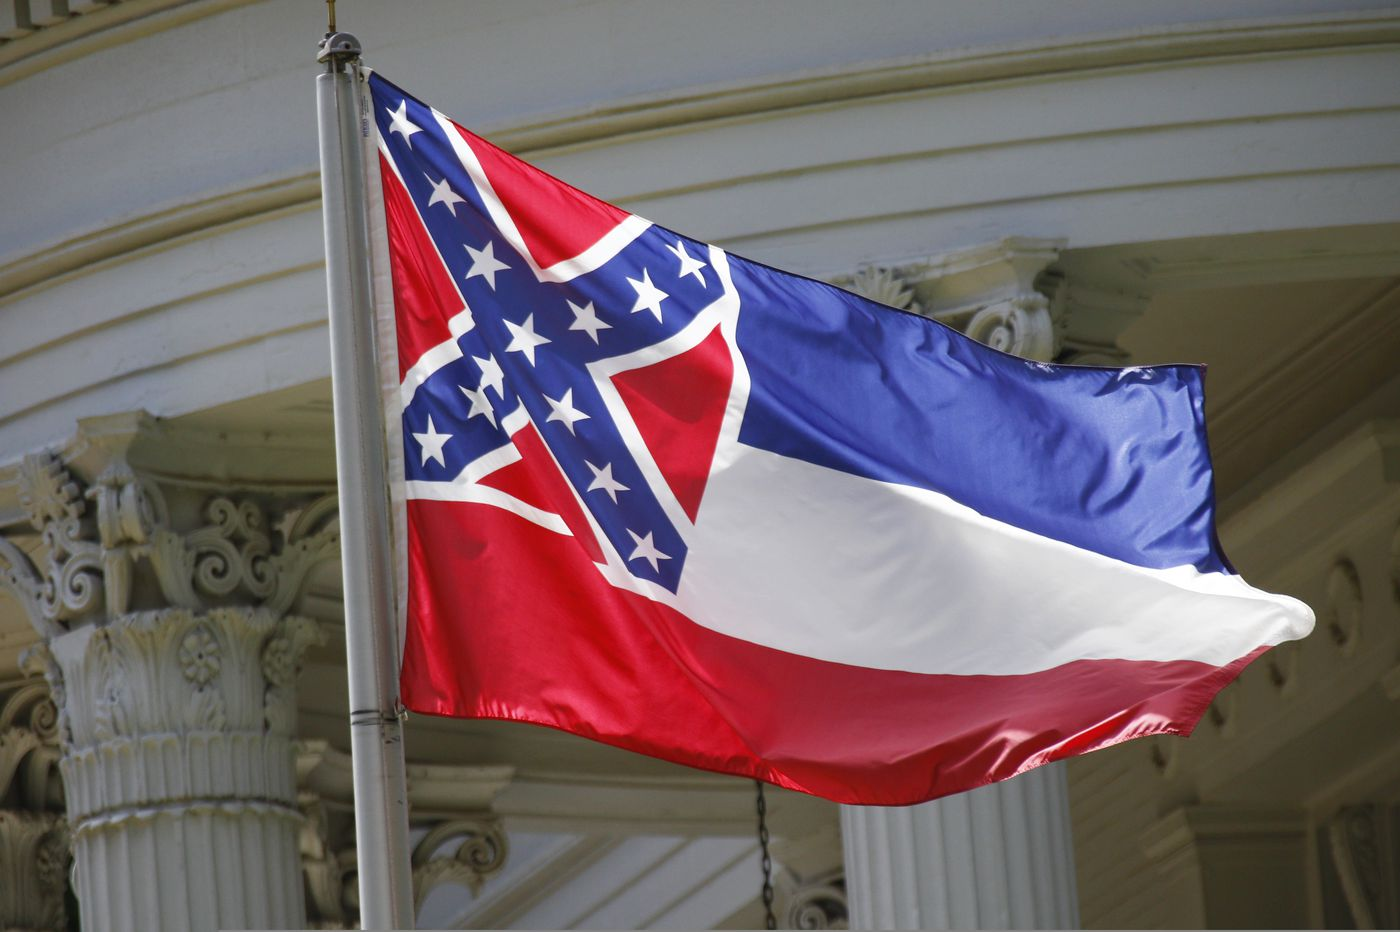 Mississippi flag with Confederate emblem ordered out of N.J. park near Statue of Liberty